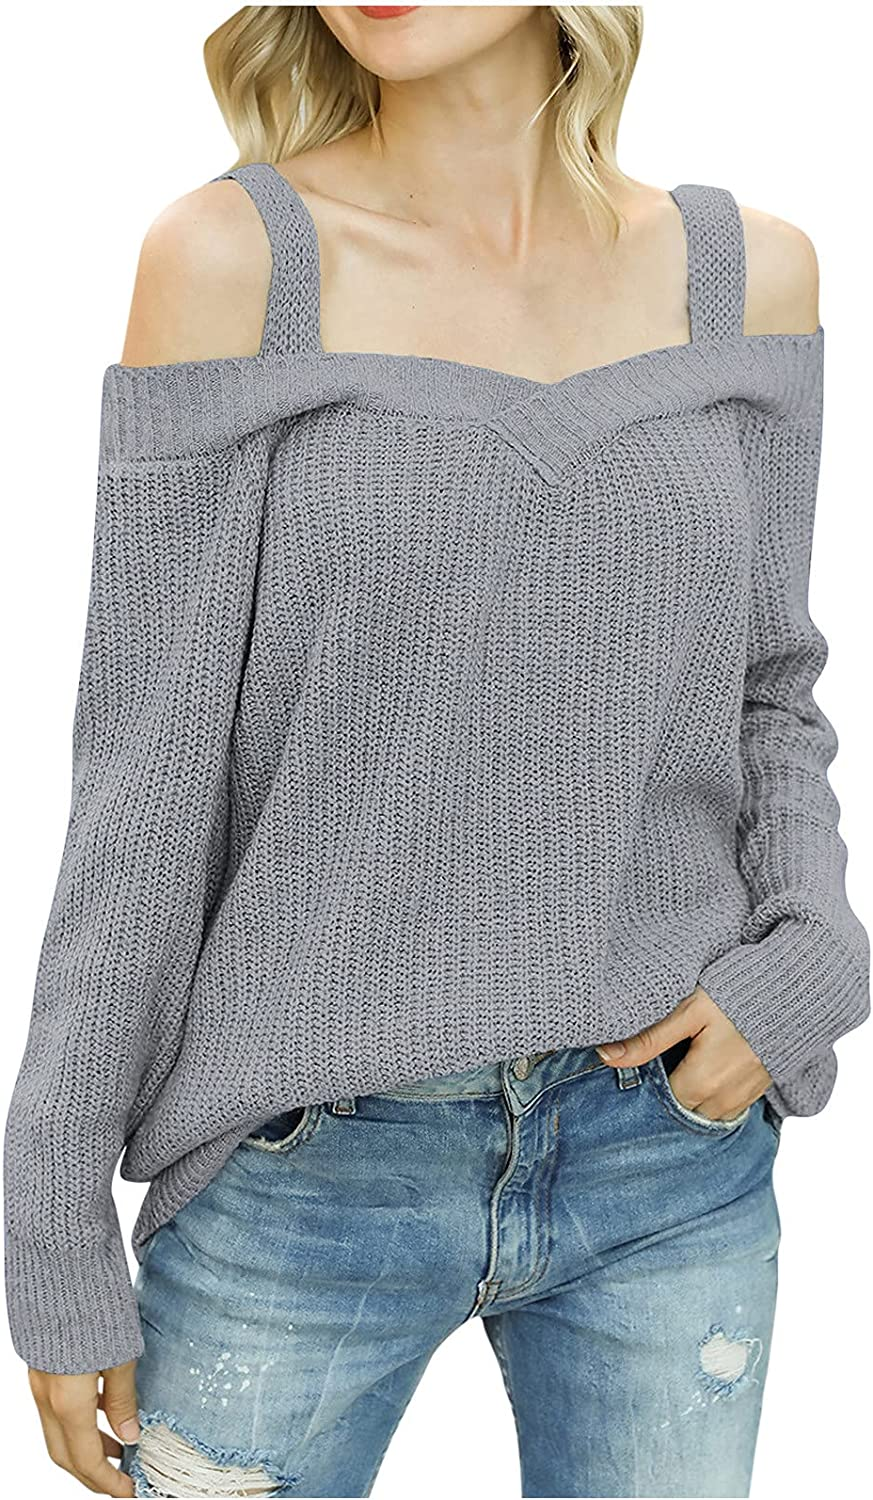 Sexy Strap Cold Shoulder Knit Sweater Tops for Women's Long Sleeve Solid Casual Loose Jumper Sweaters